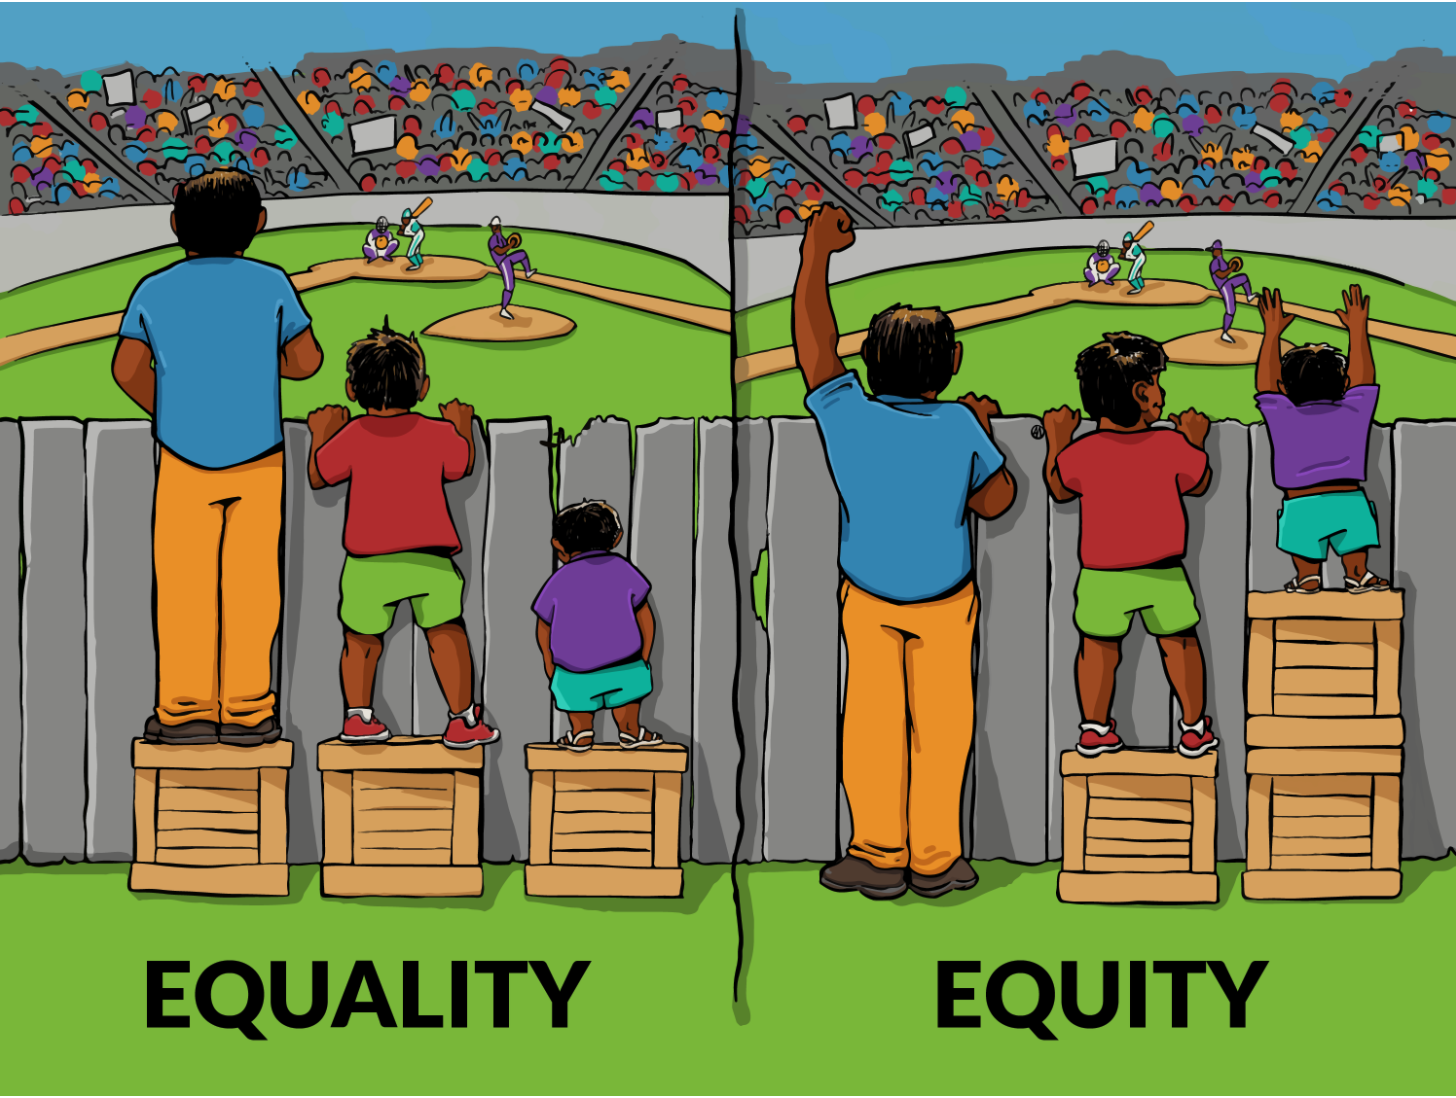 Illustrating Inequality